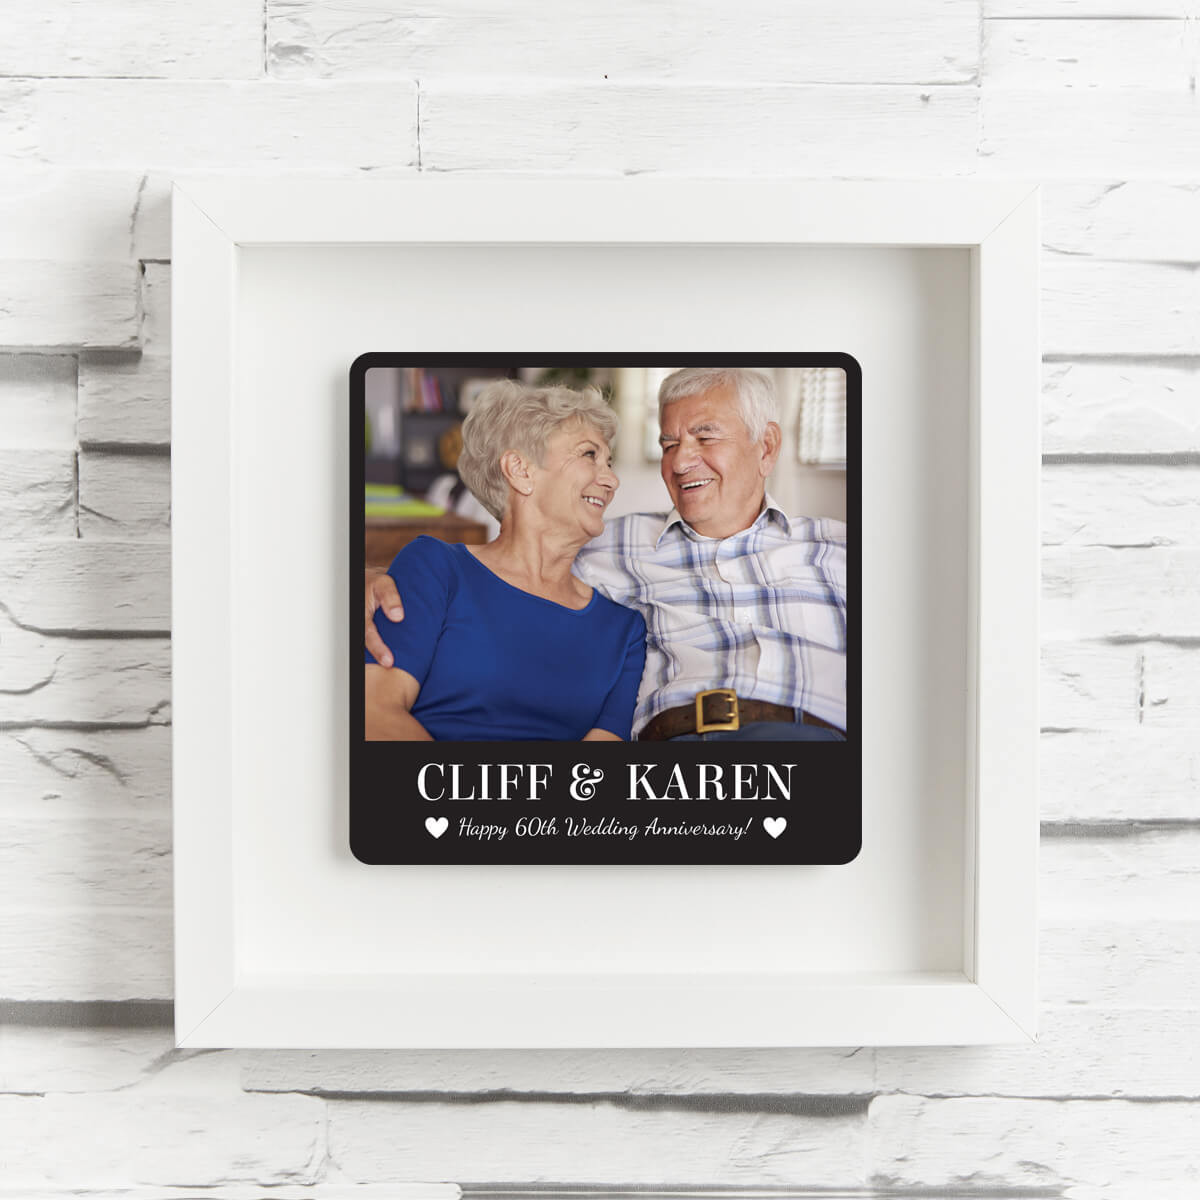 personalised 60th wedding anniversary shadow box